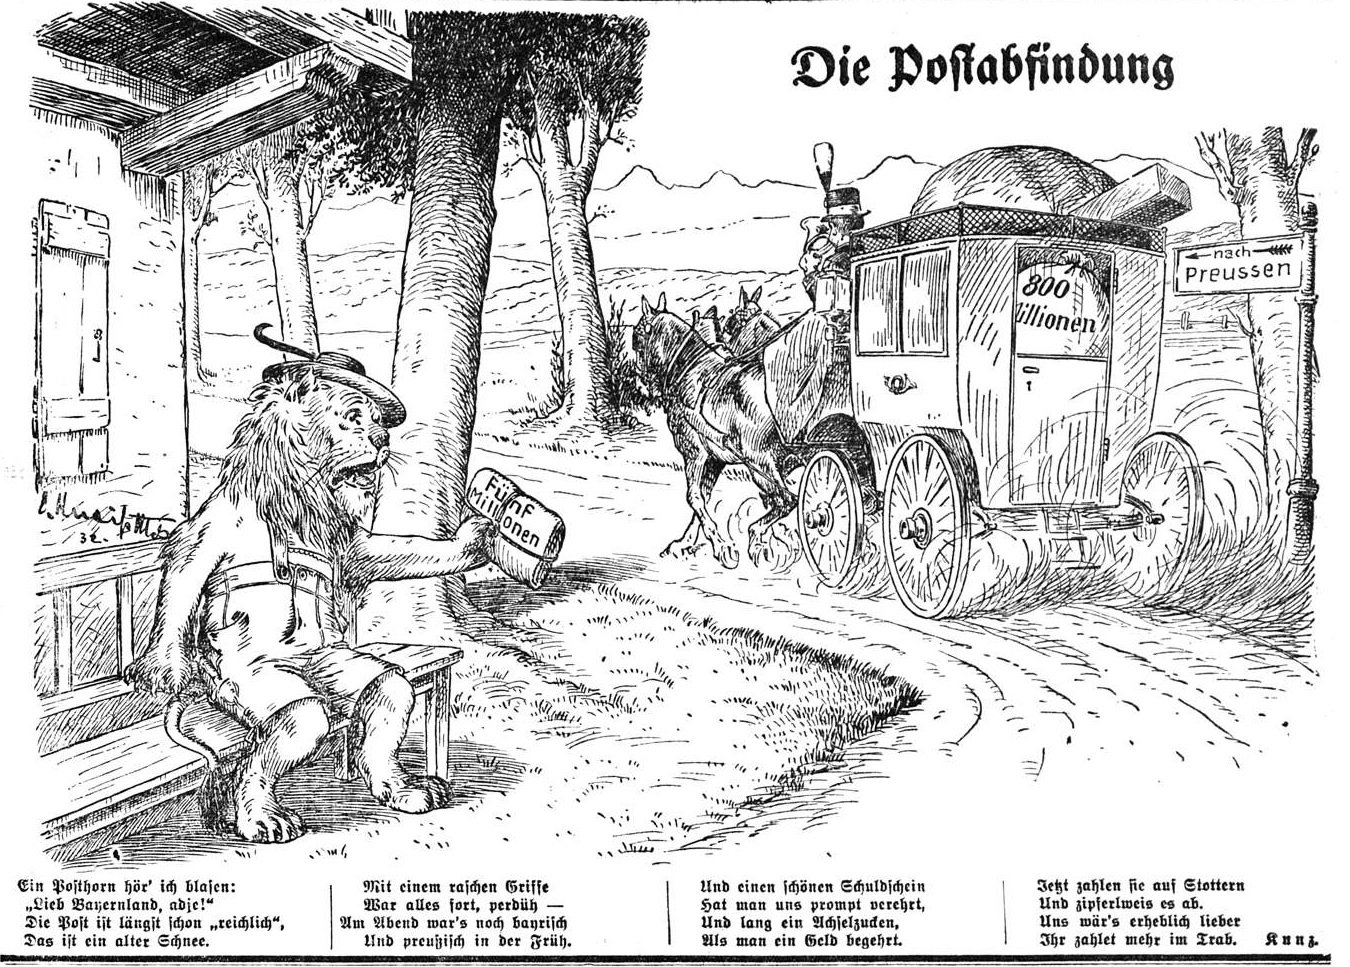 April 1932: Die Postabfindung